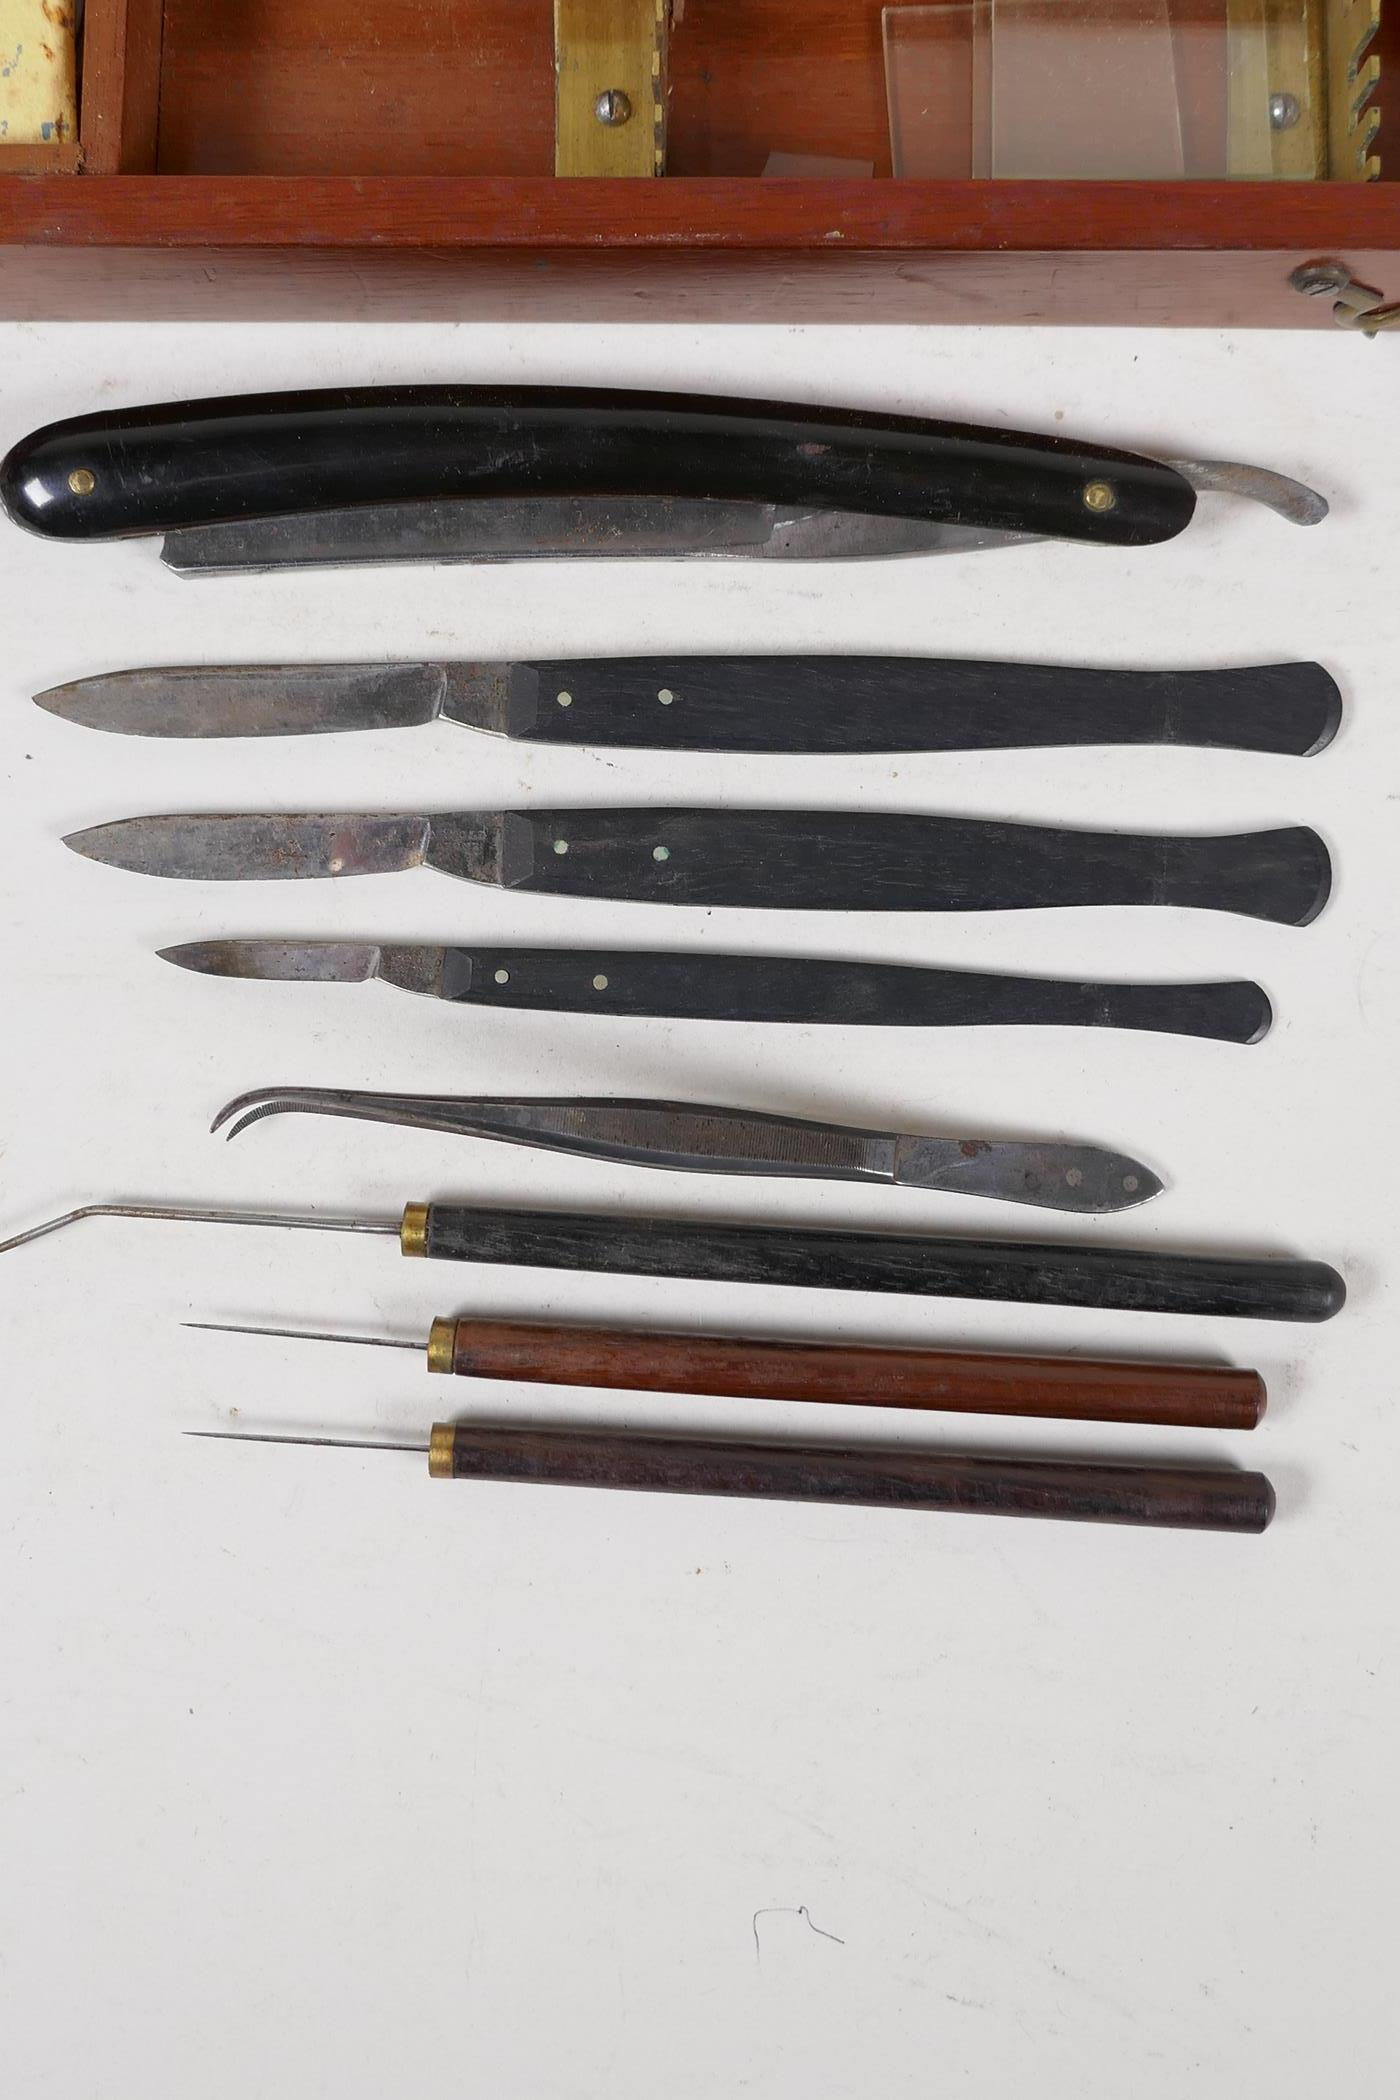 A field surgeons kit by Arnold & Sons, London, for Clive & Co, containing scalpels, a cut throat, - Image 4 of 5